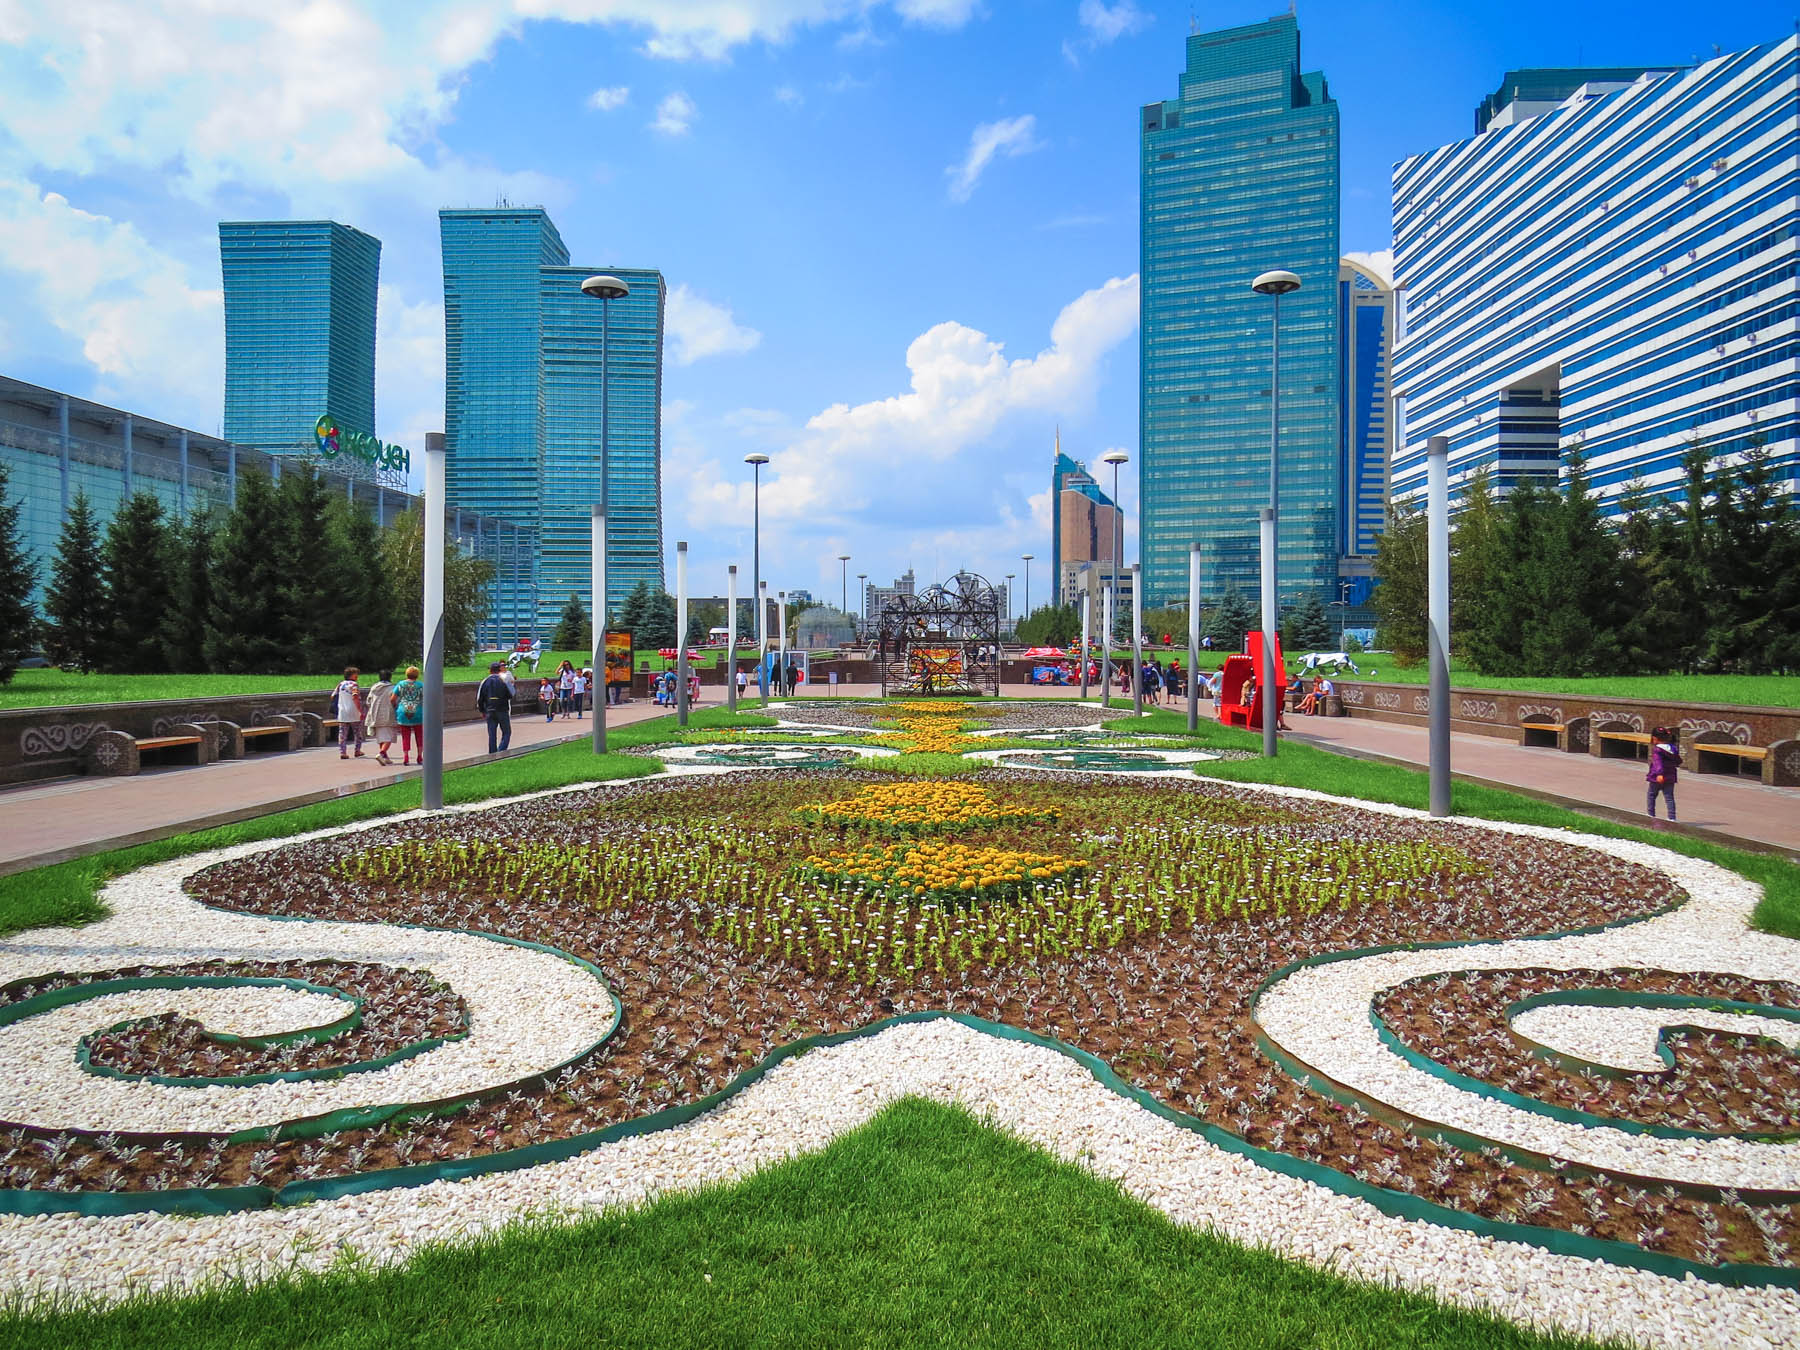 Things to do in Astana, Kazakhstan - The City Walk gardens